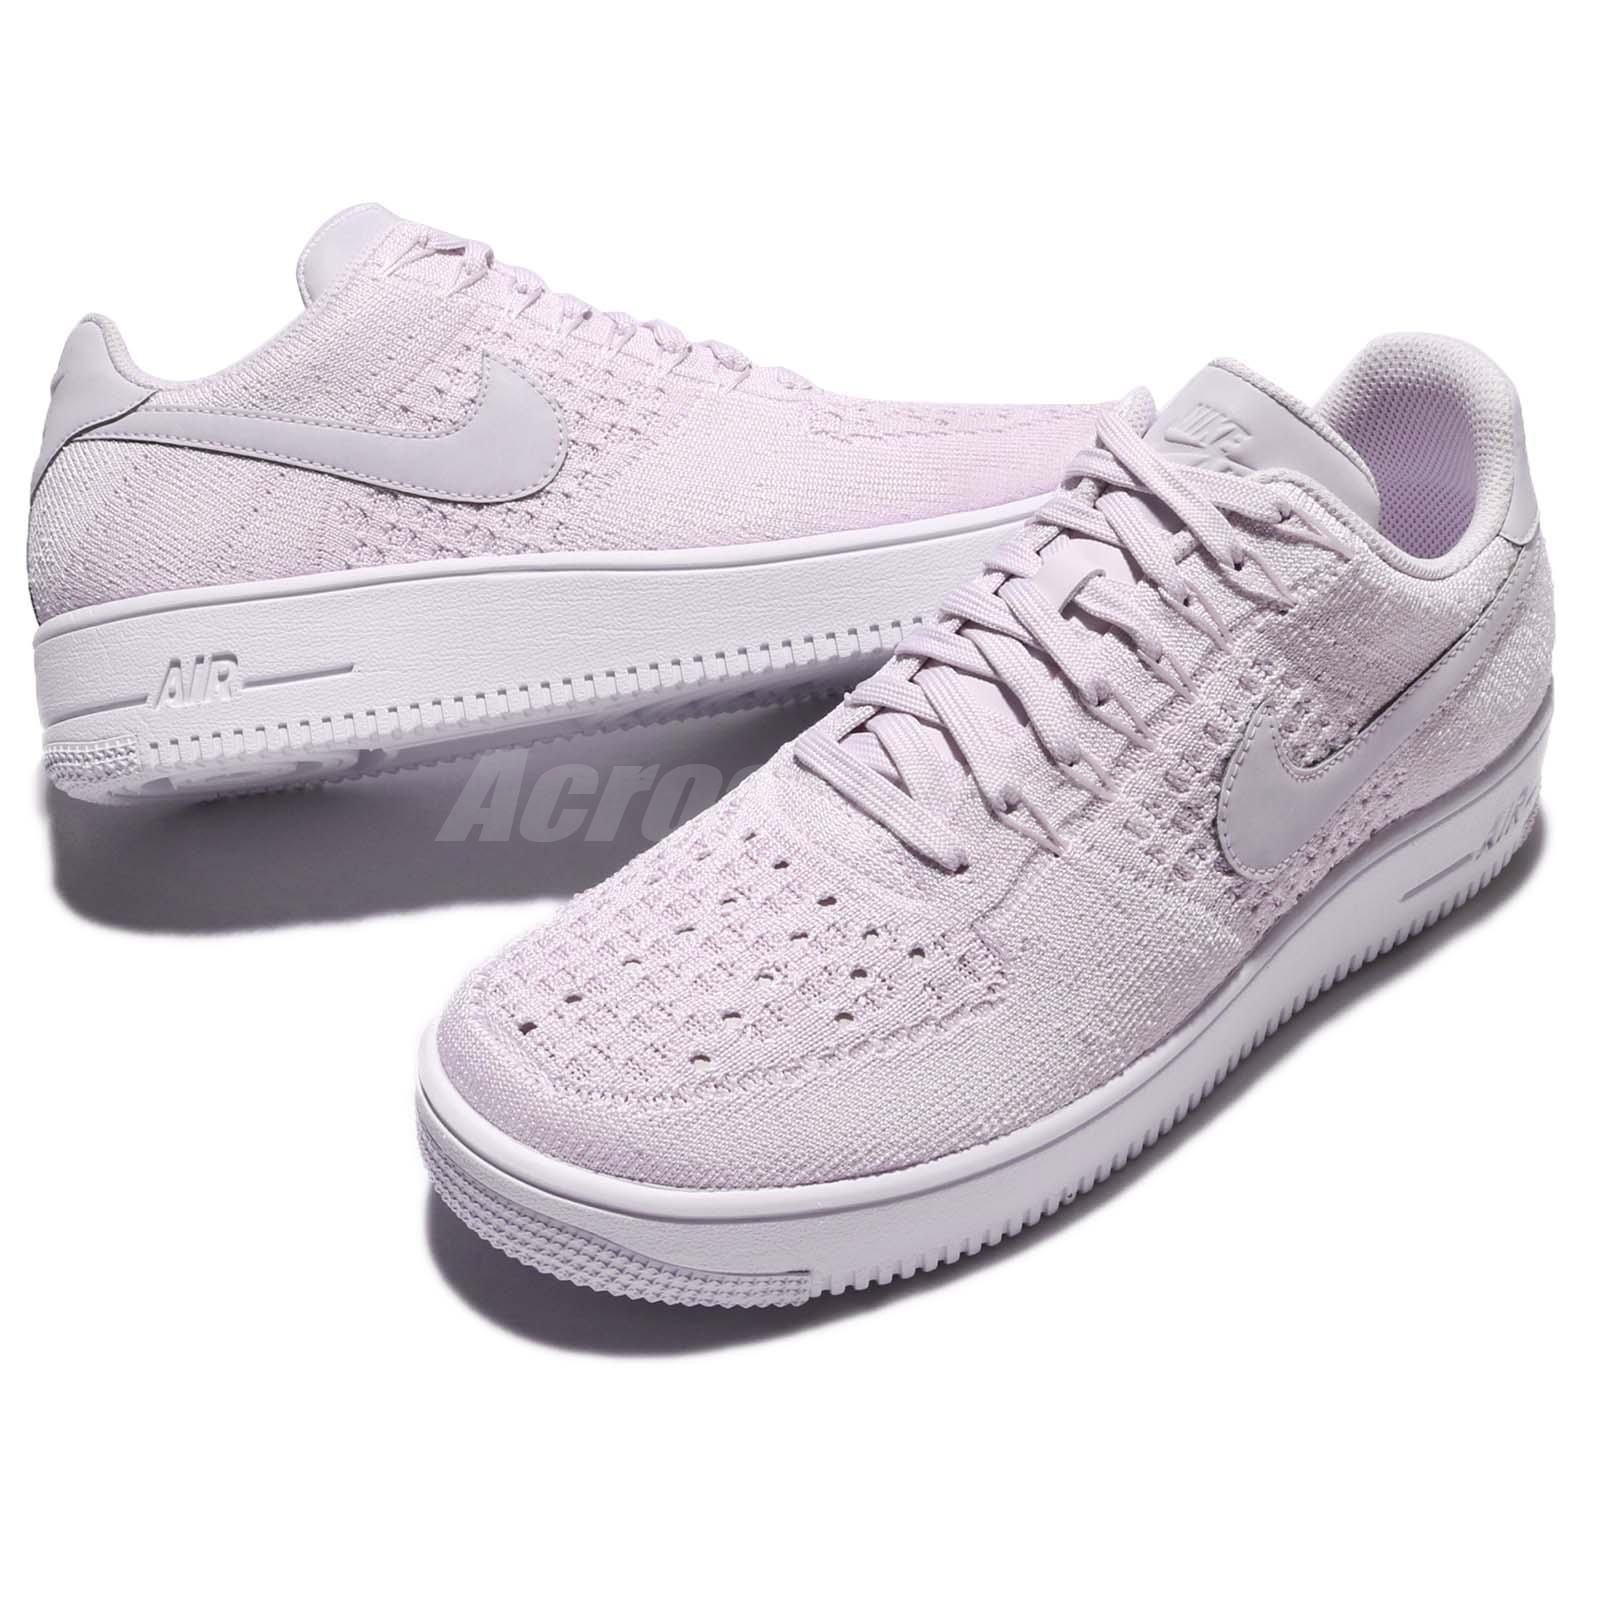 competitive price 89e92 109e6 Details about Nike AF1 Ultra Flyknit Low Air Force 1 Light Violet Men  Casual Shoes 817419-500